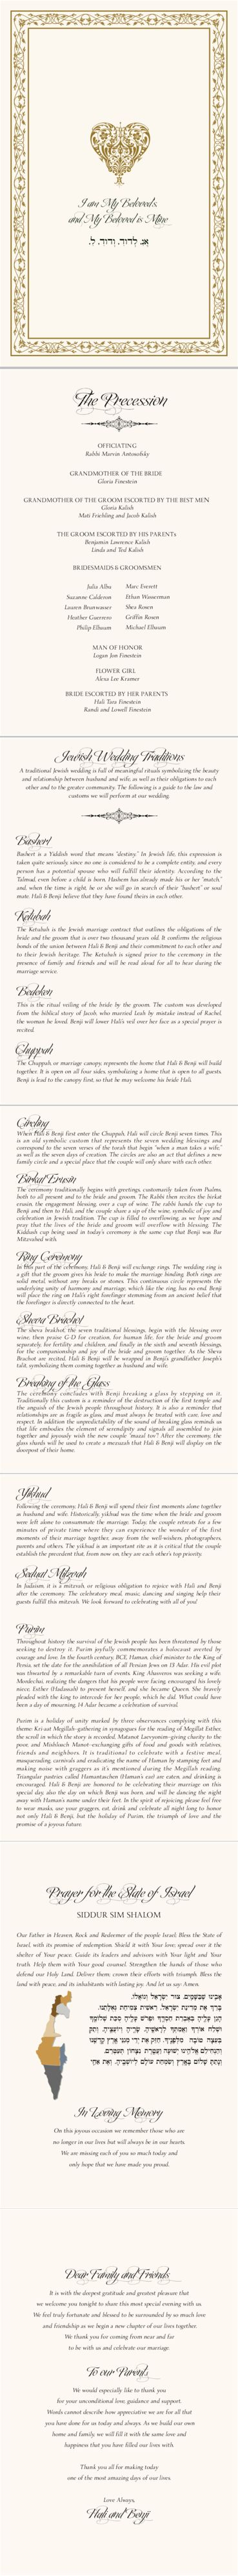 Prayer For Israel Jewish Wedding Programs